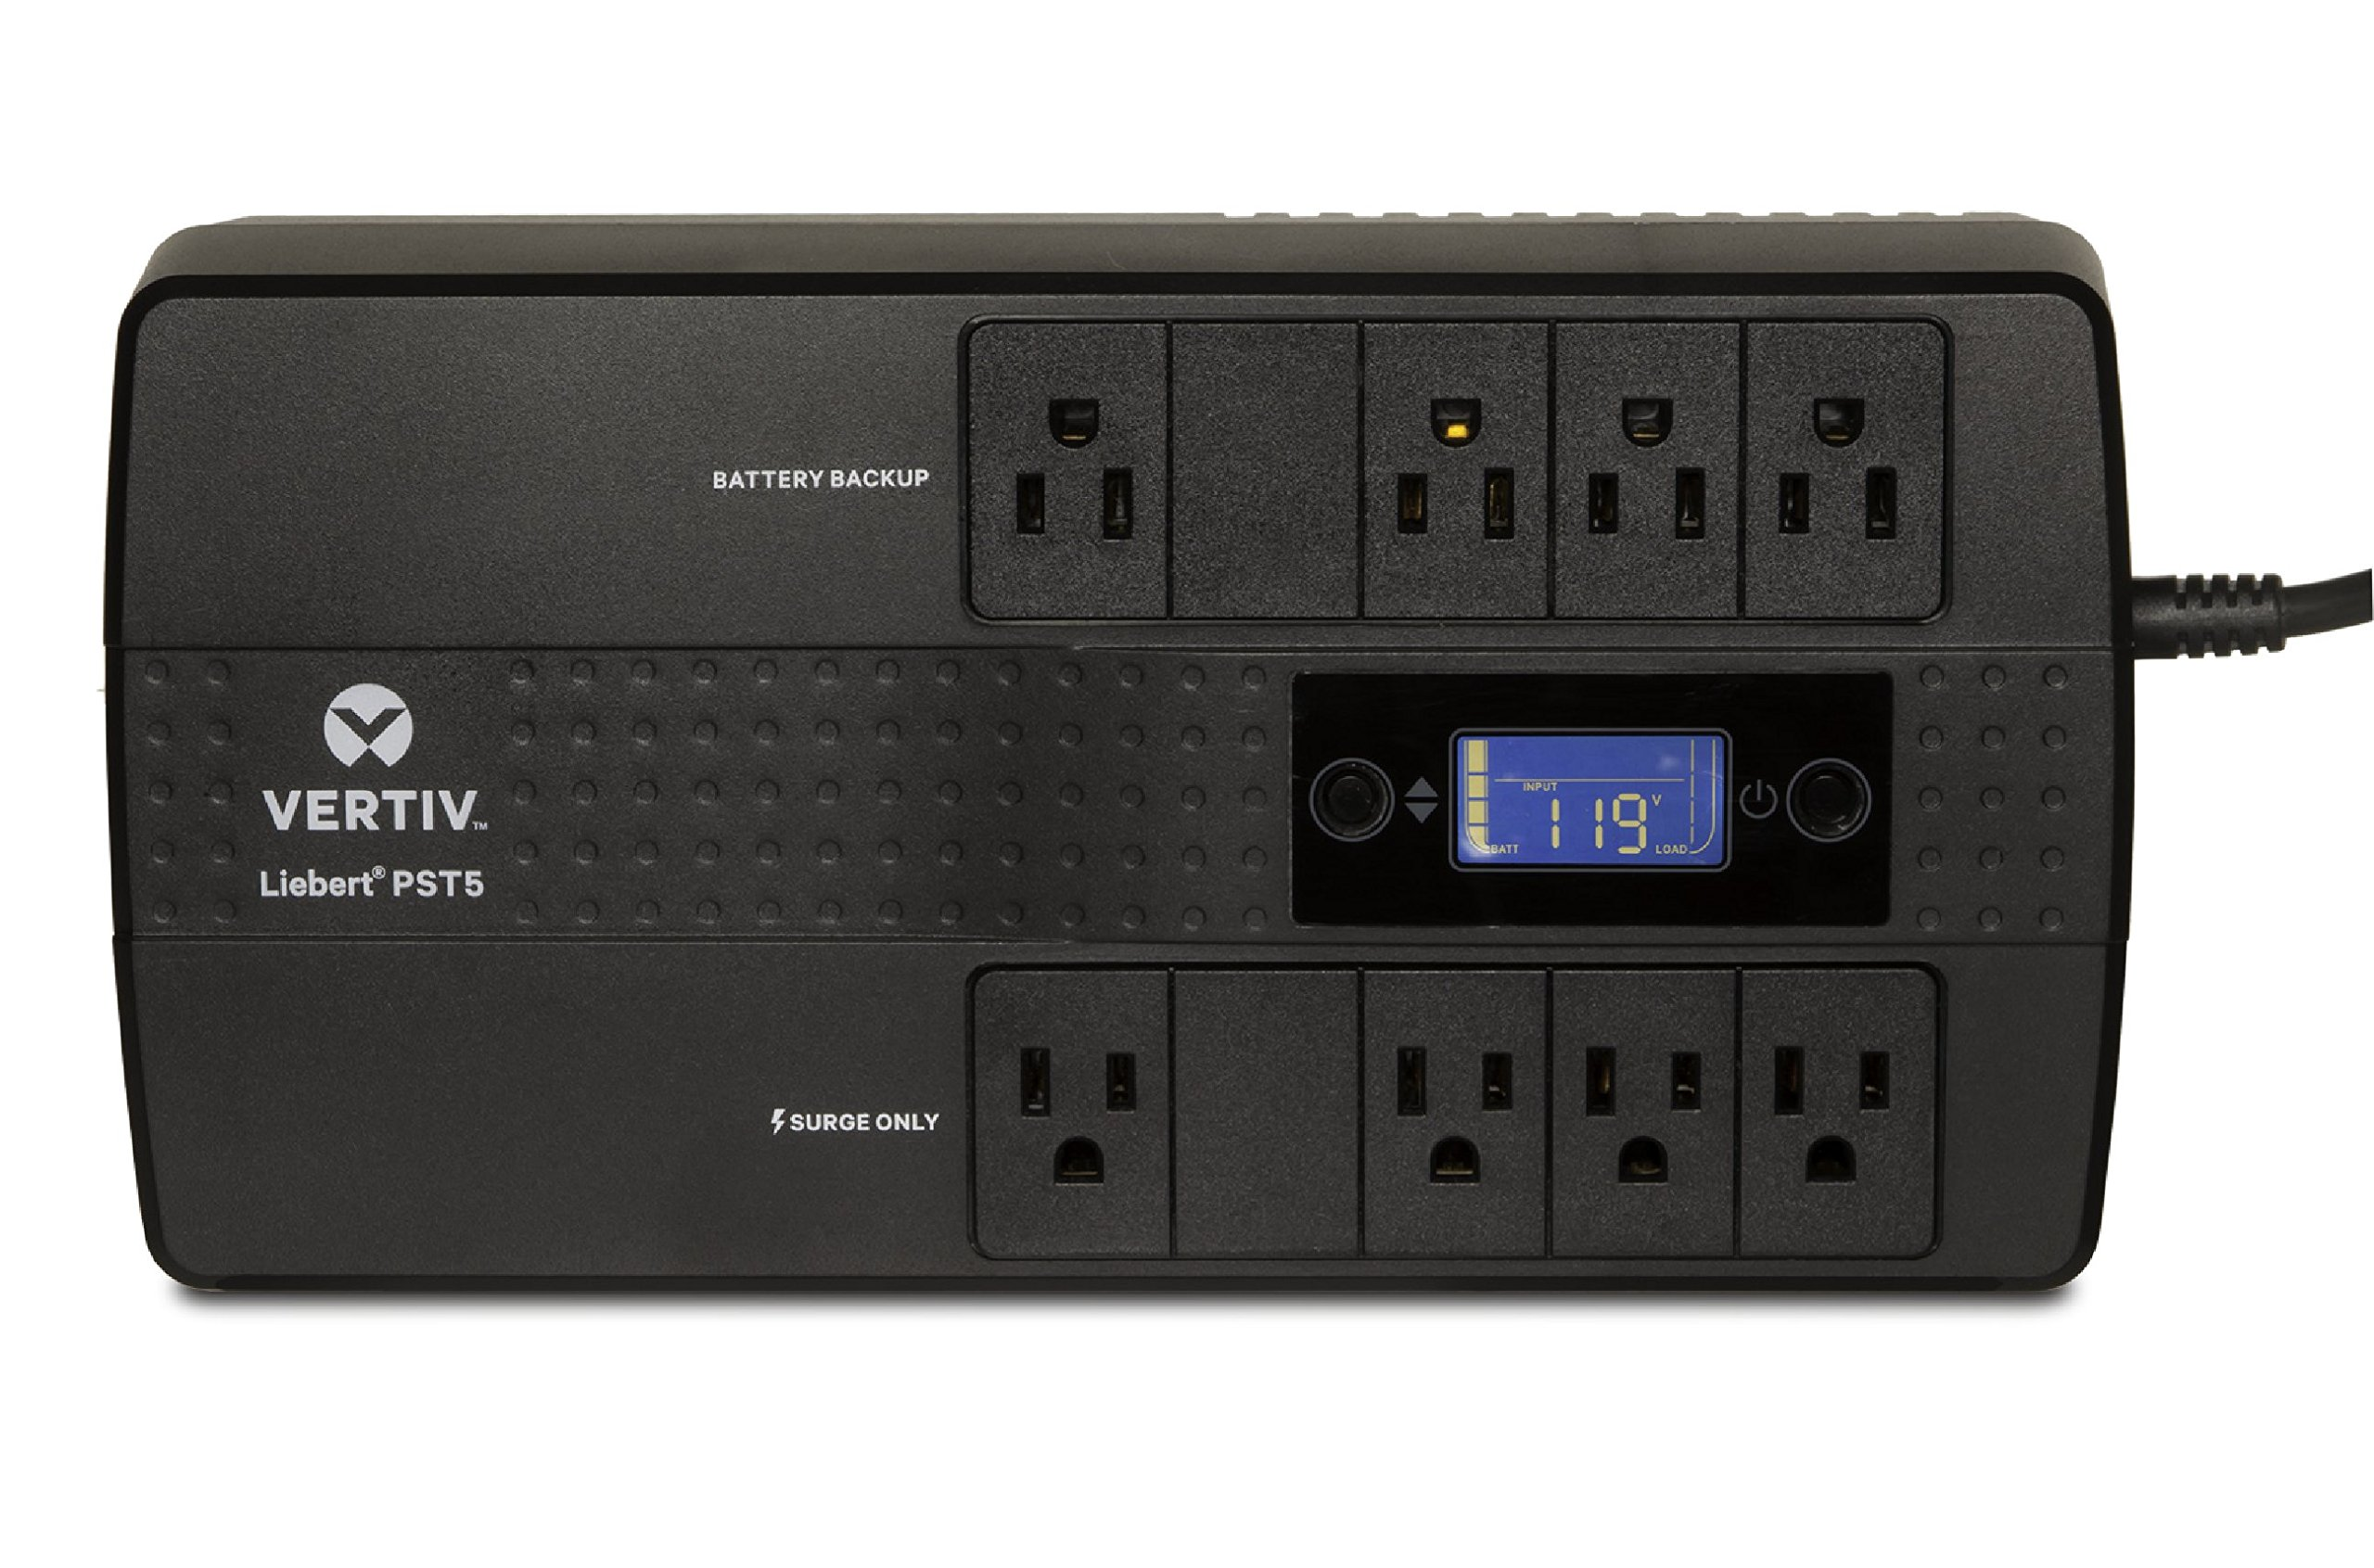 Vertiv Liebert PST5 660VA 400W UPS with Battery Backup & Surge Protection, Eight outlets and a Three-Year, Full Unit Warranty (PST5-660MT120)